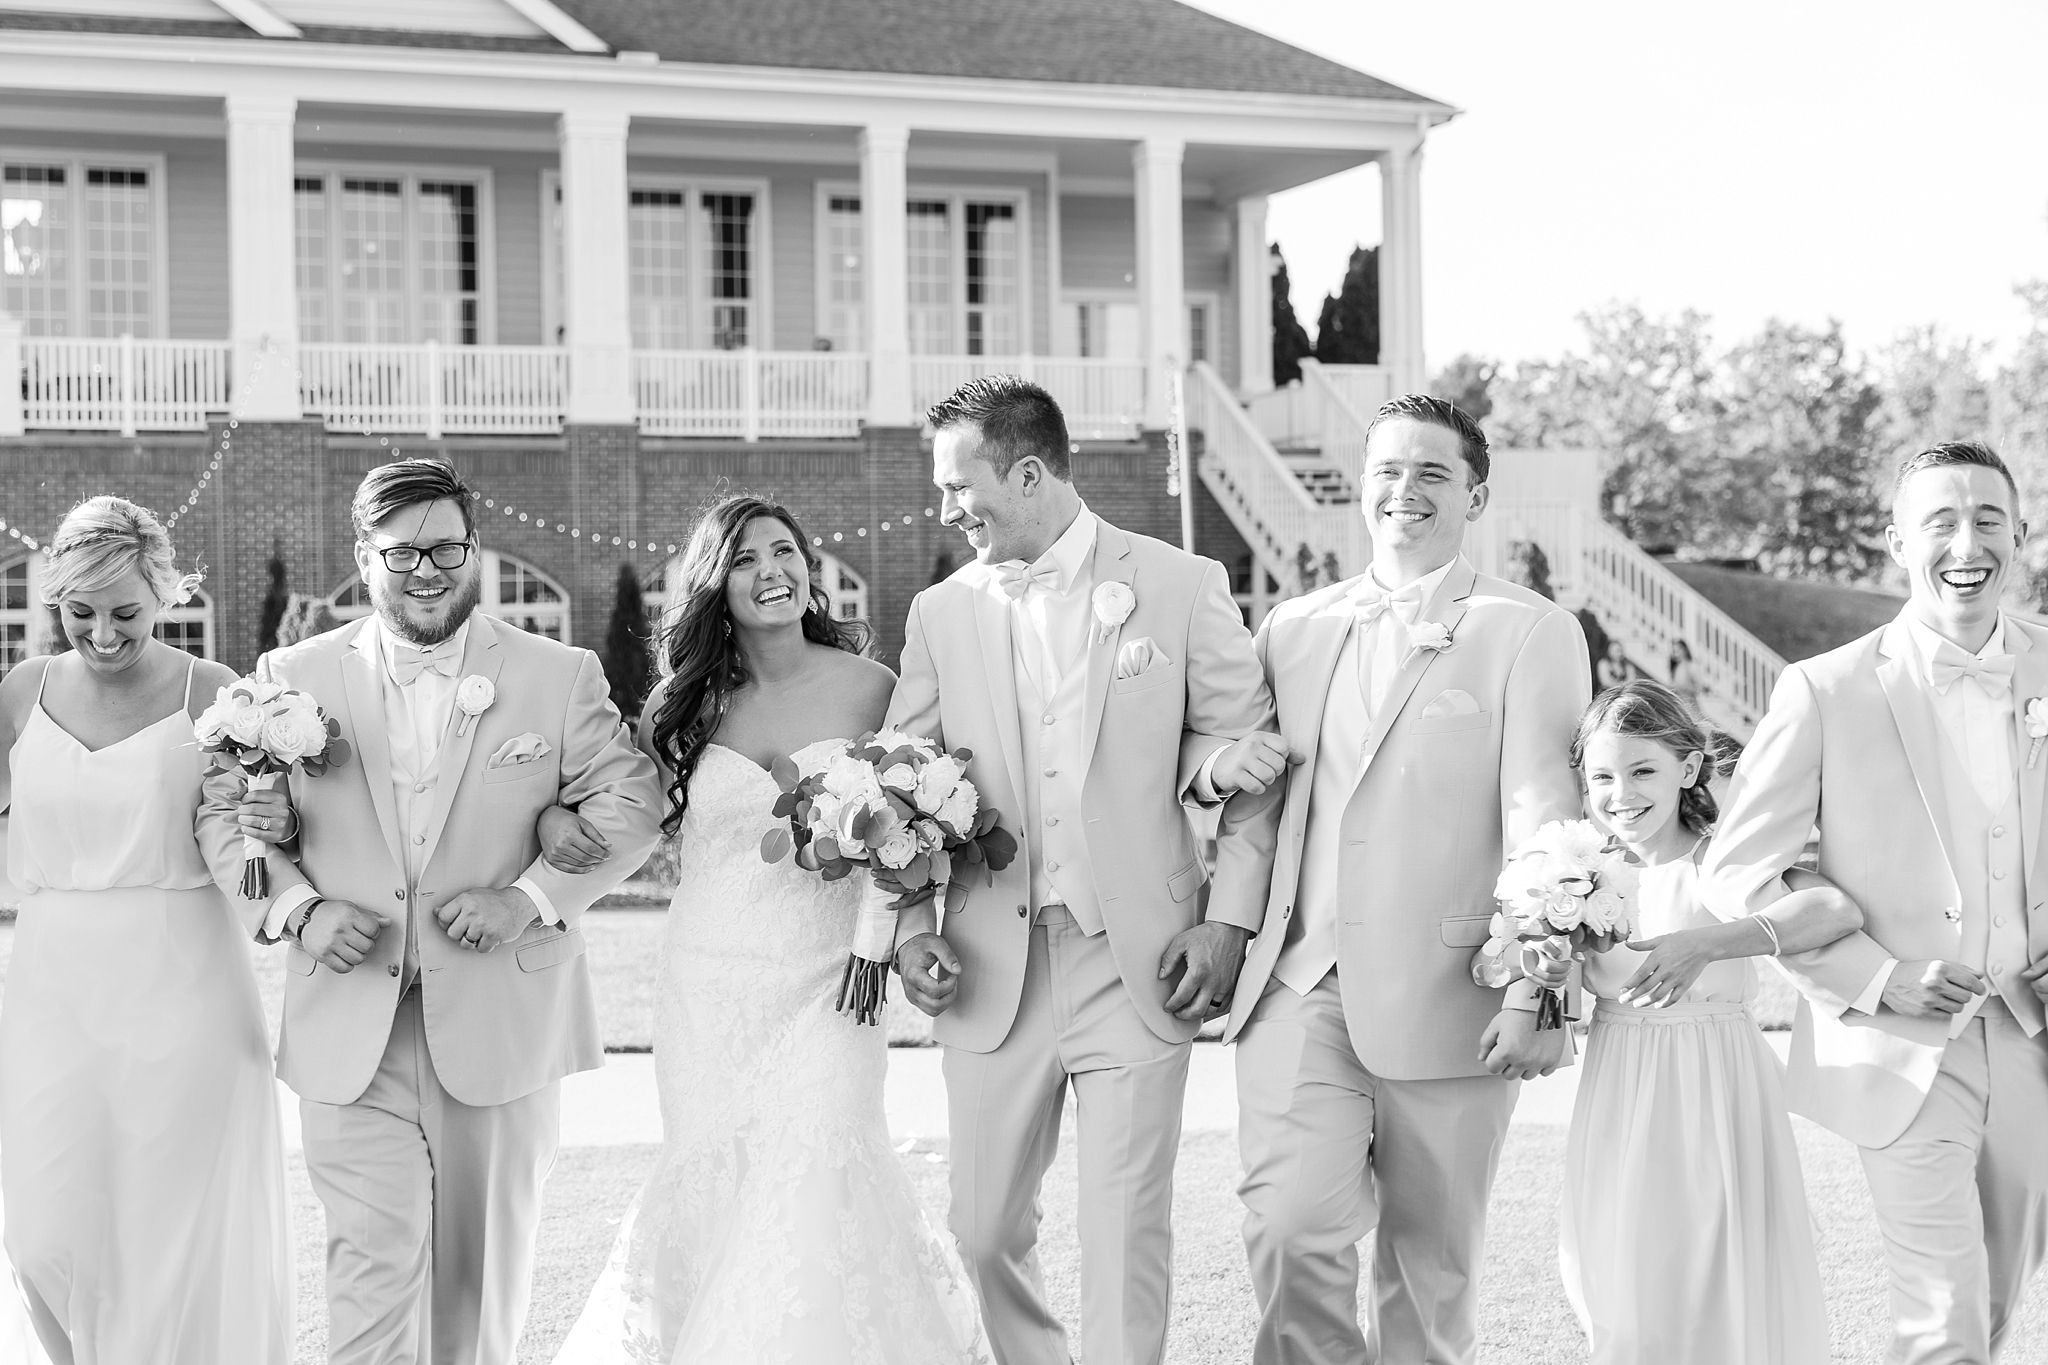 candid-timeless-wedding-photos-at-the-captains-club-in-grand-blanc-michigan-by-courtney-carolyn-photography_0060.jpg